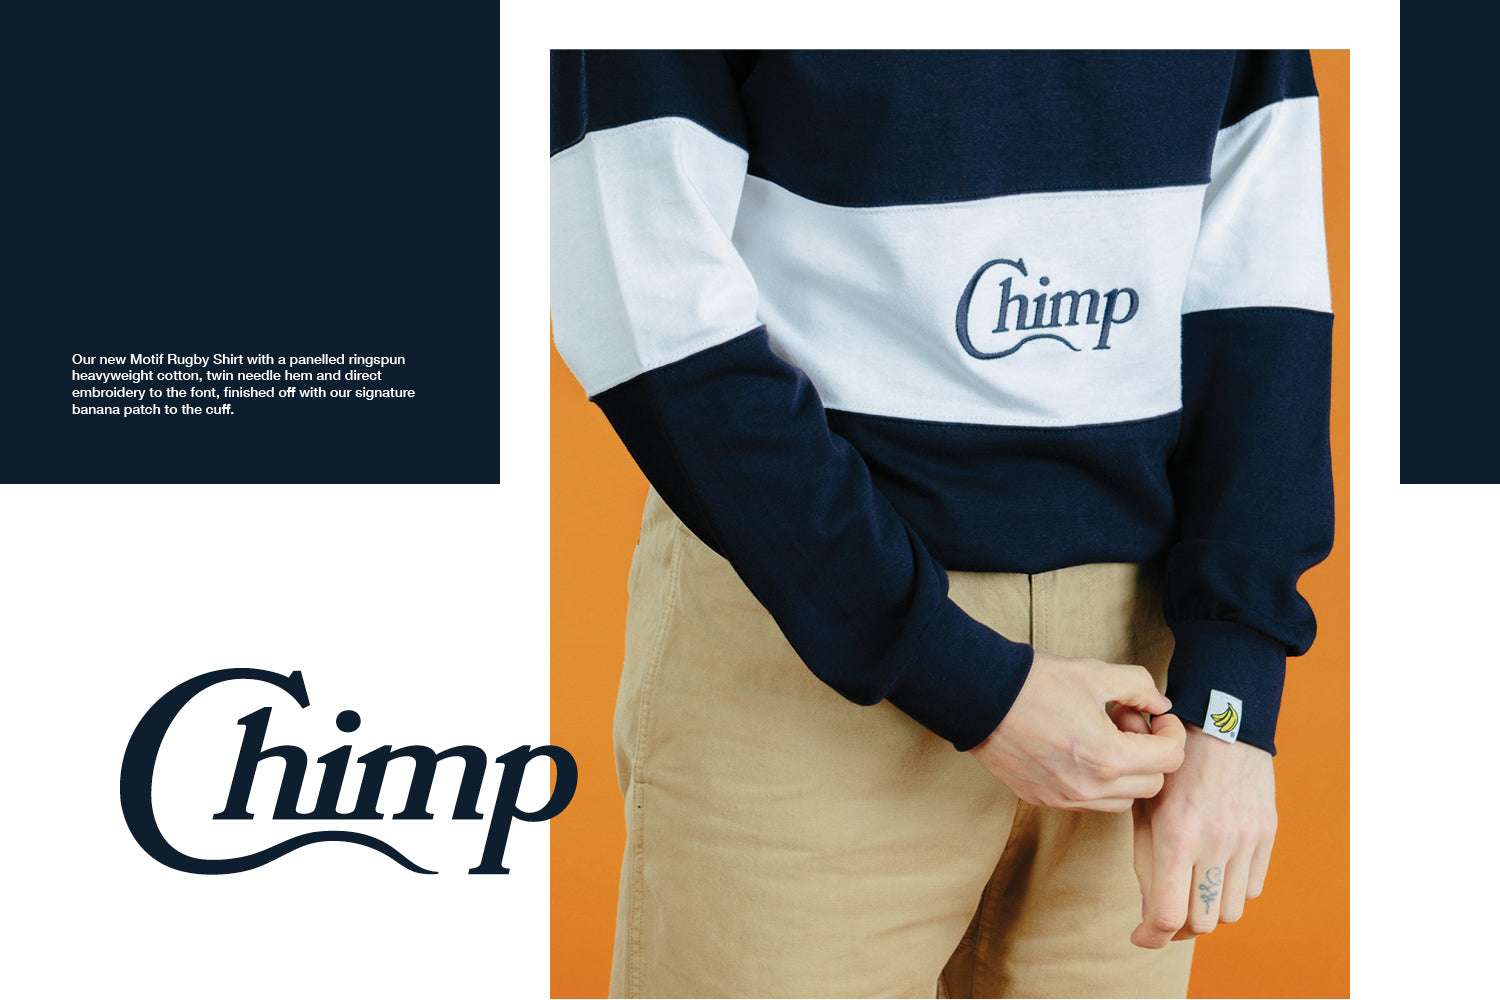 Chimp Motif Rugby Shirt